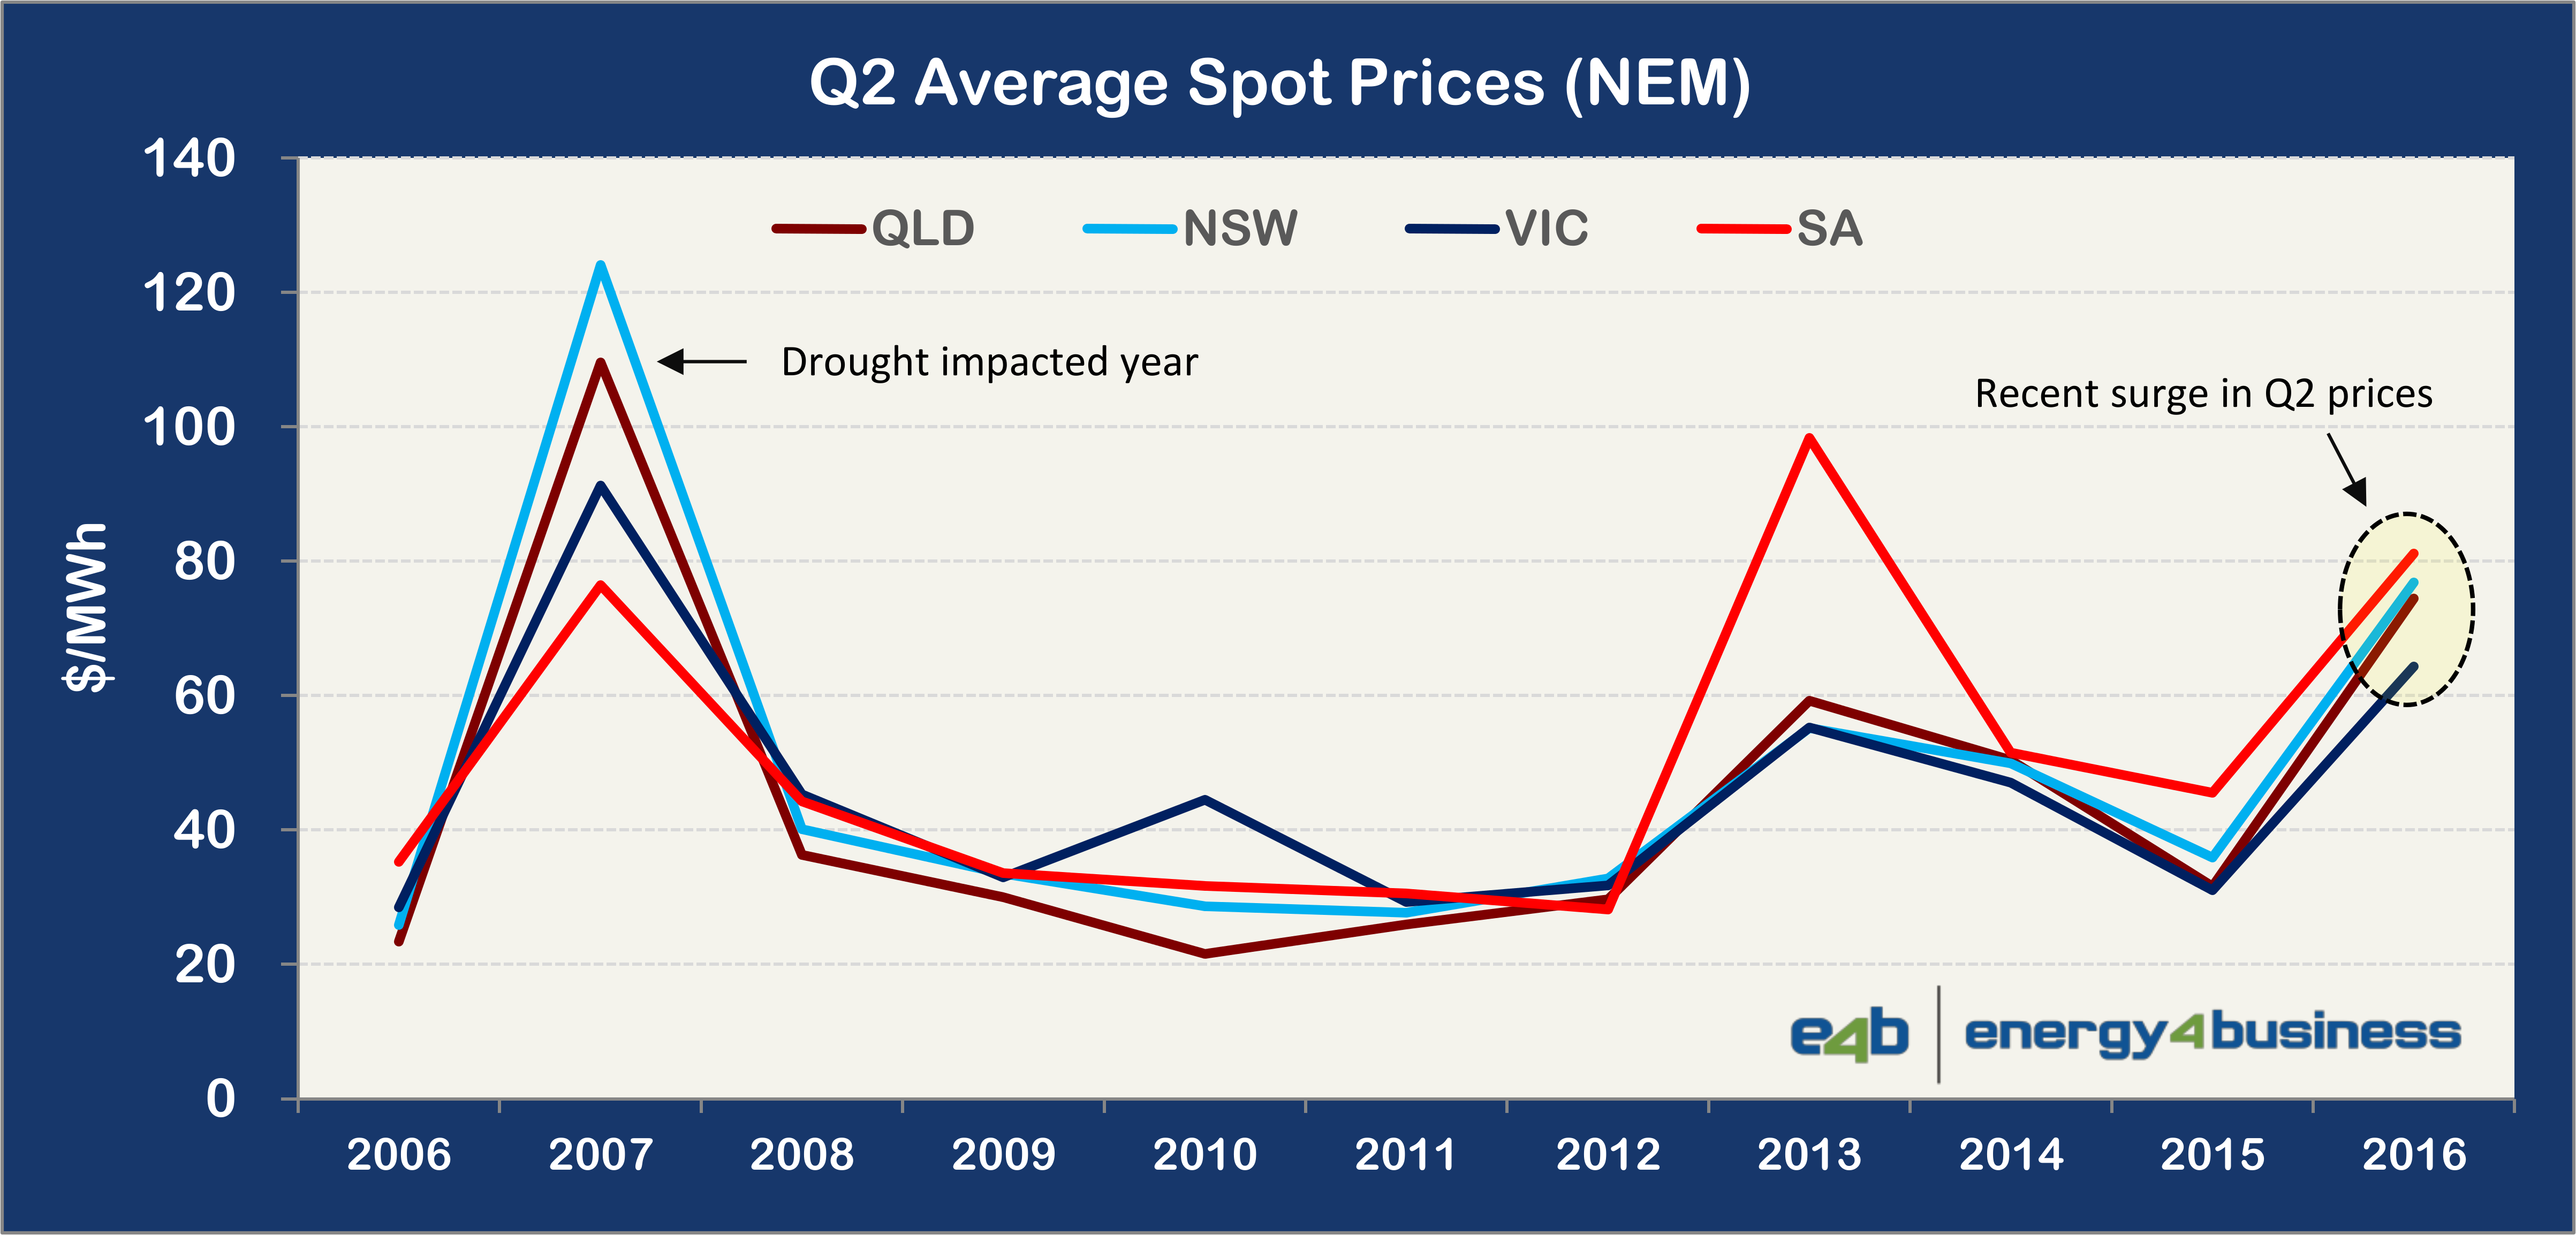 Electricity Price Spikes - Q2 Prices